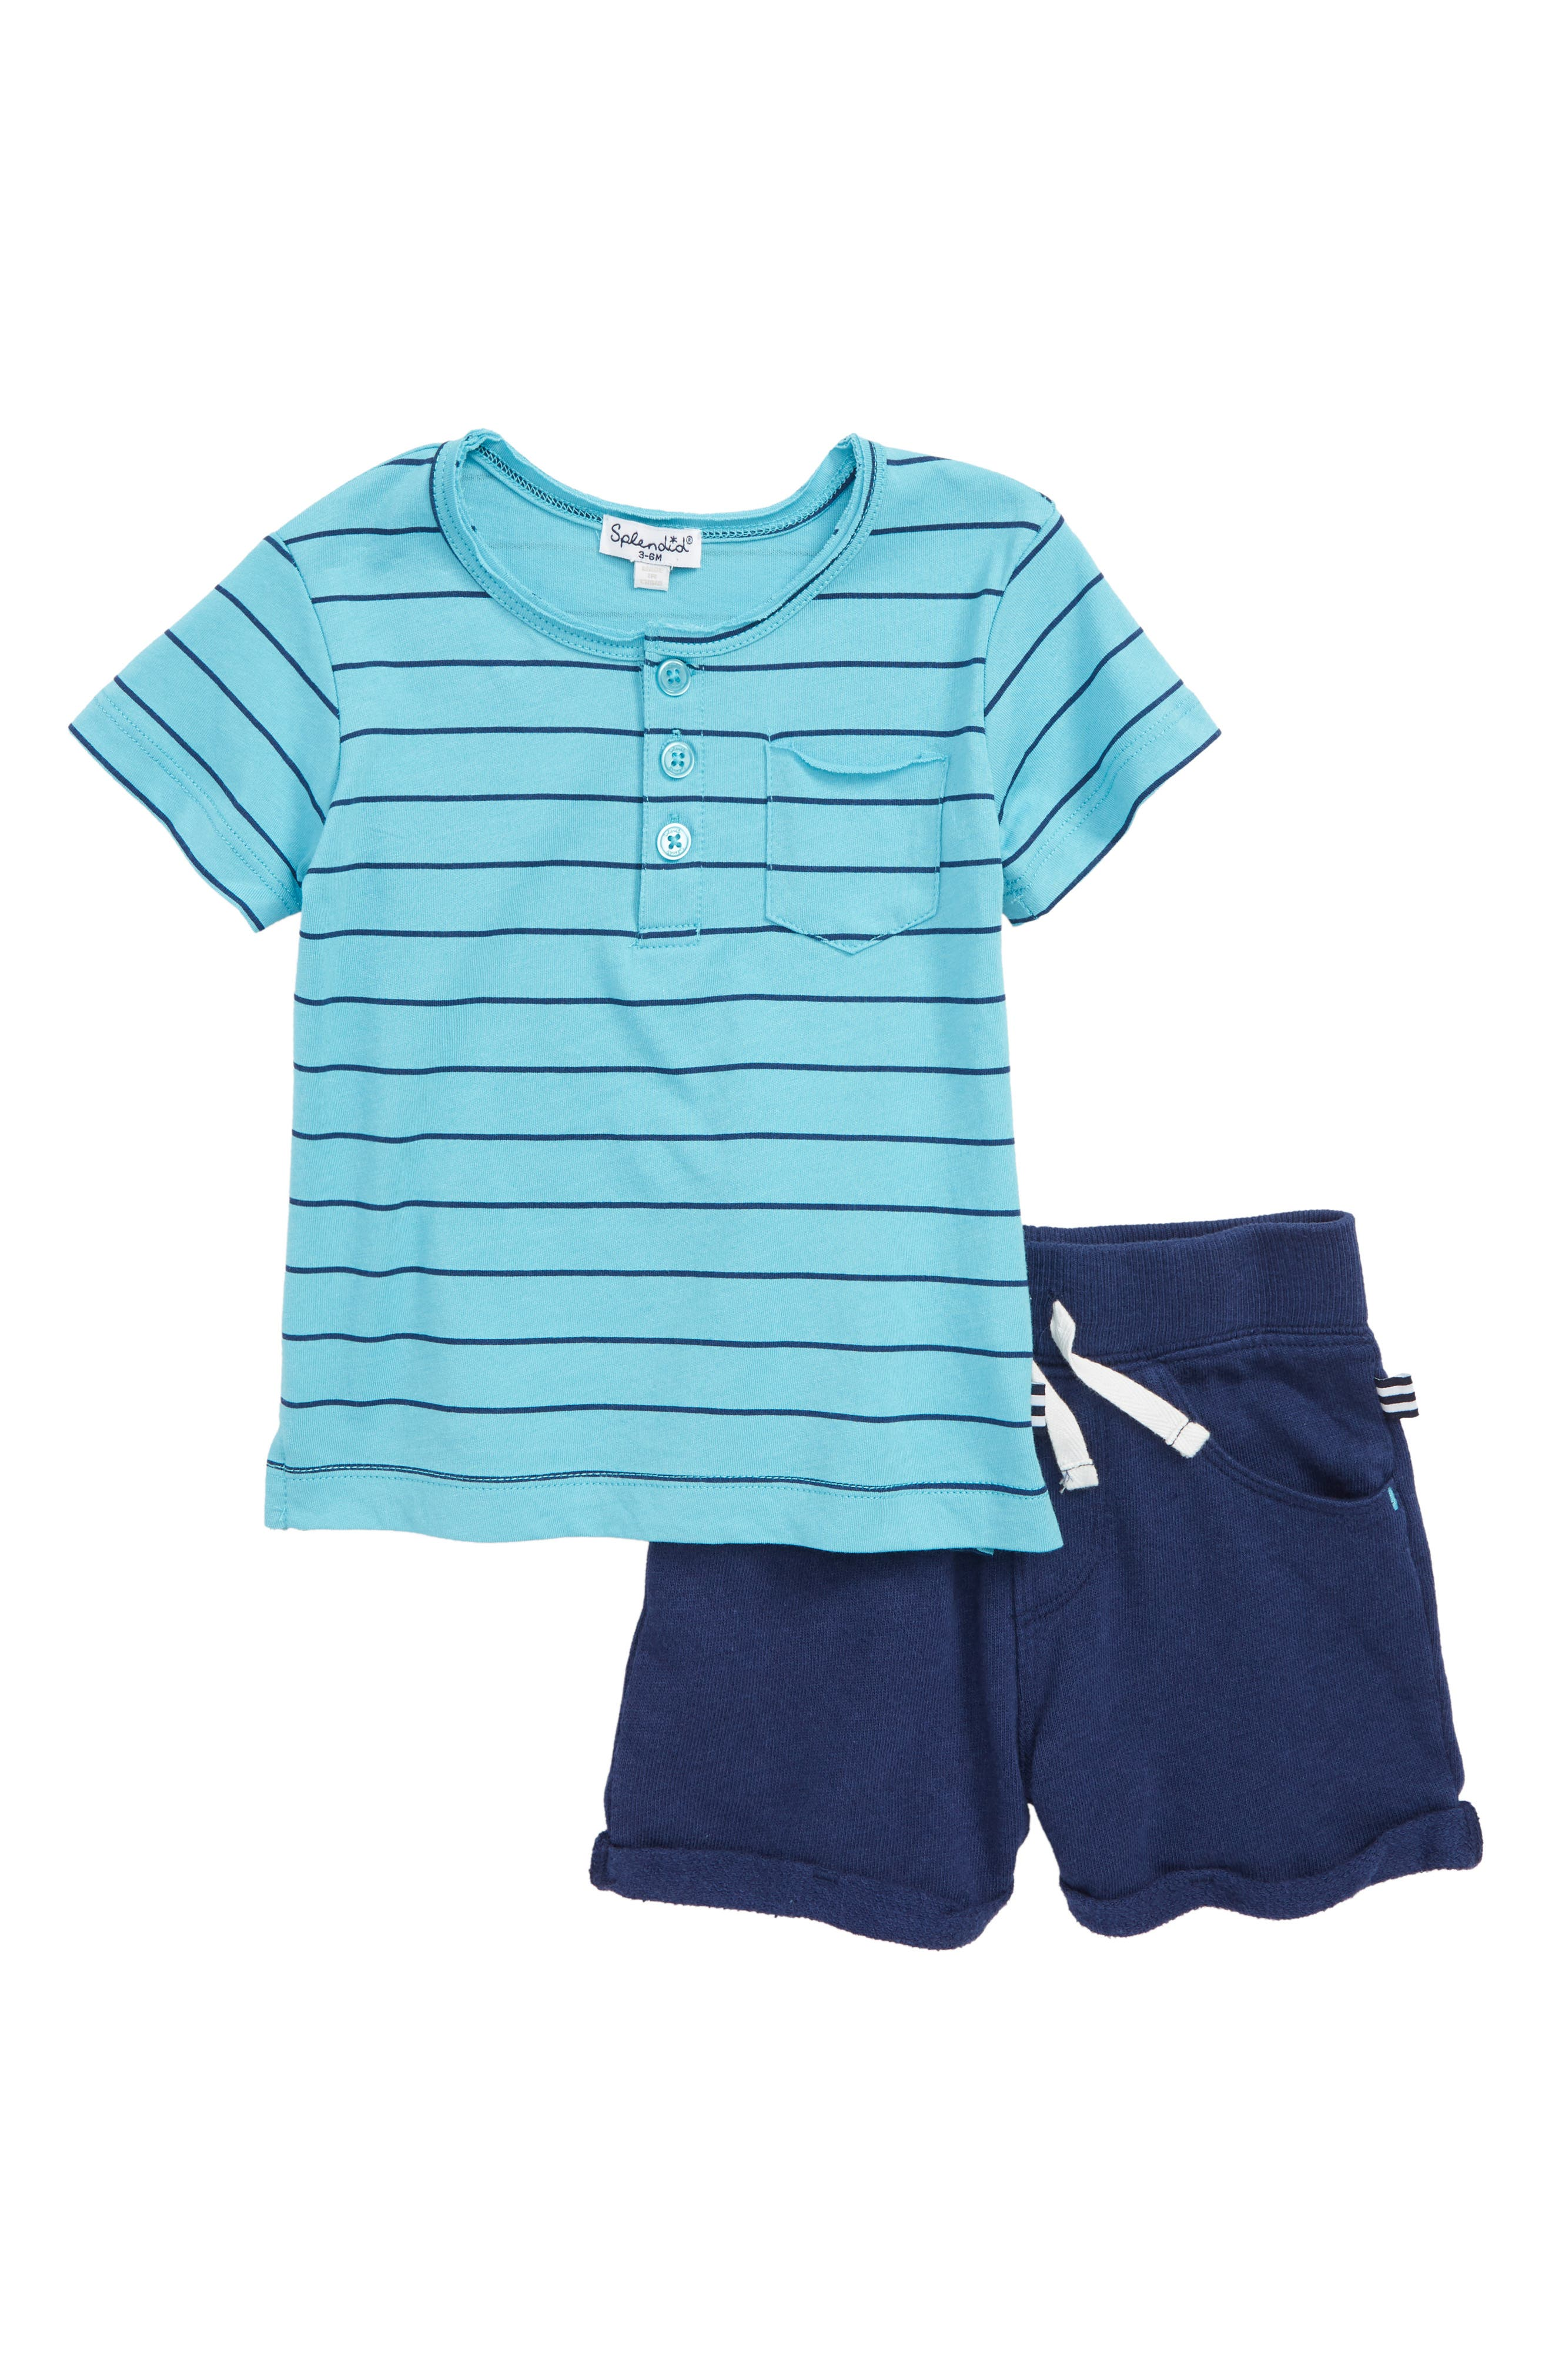 Splendid Henley T-Shirt & Shorts Set (Baby Boys)